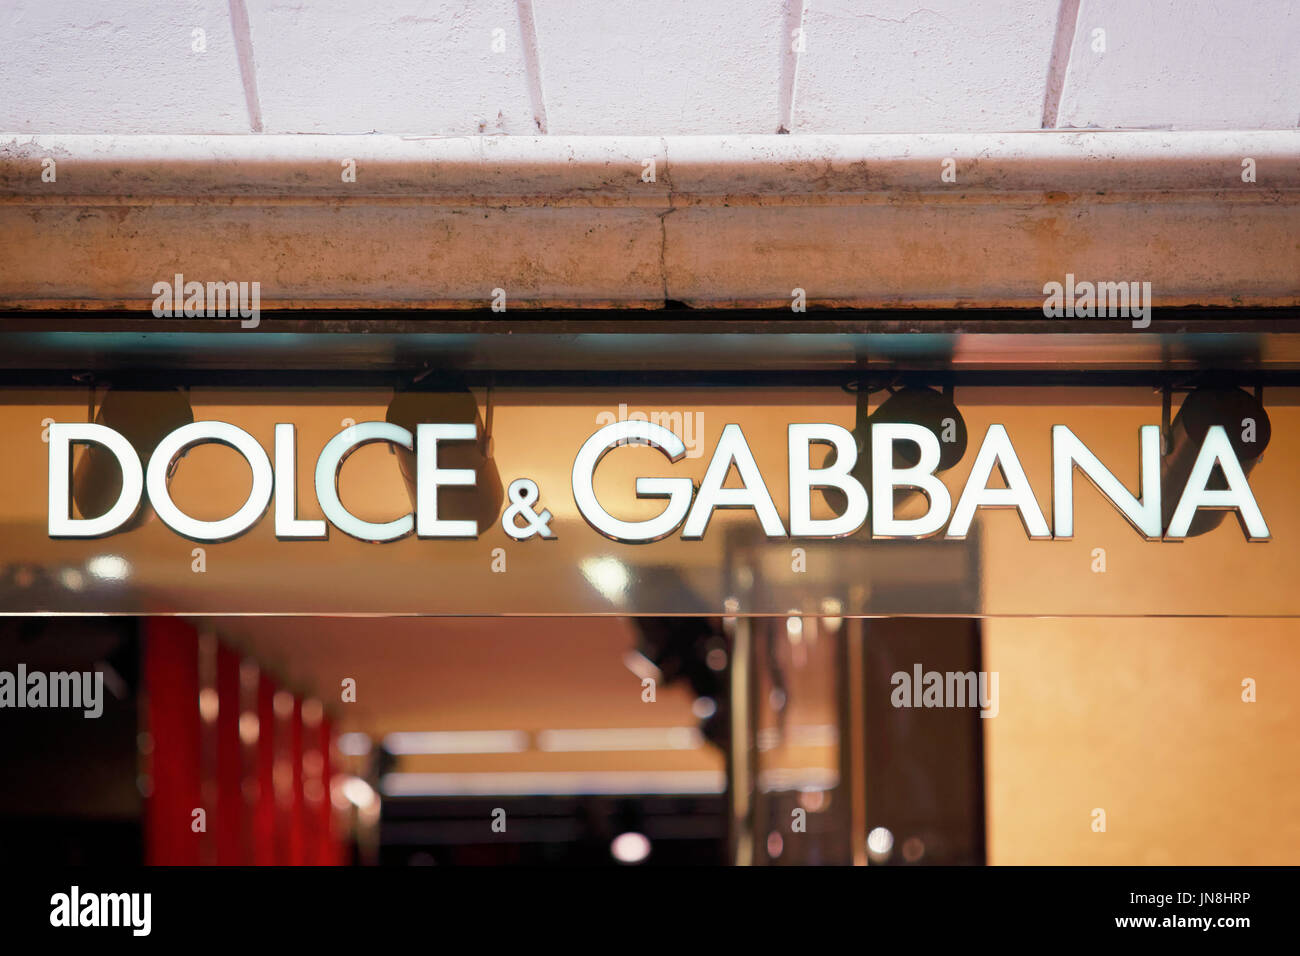 Rome, Italy - October 14, 2016: Dolce Gabbana Sign of street shop window in Rome. - Stock Image